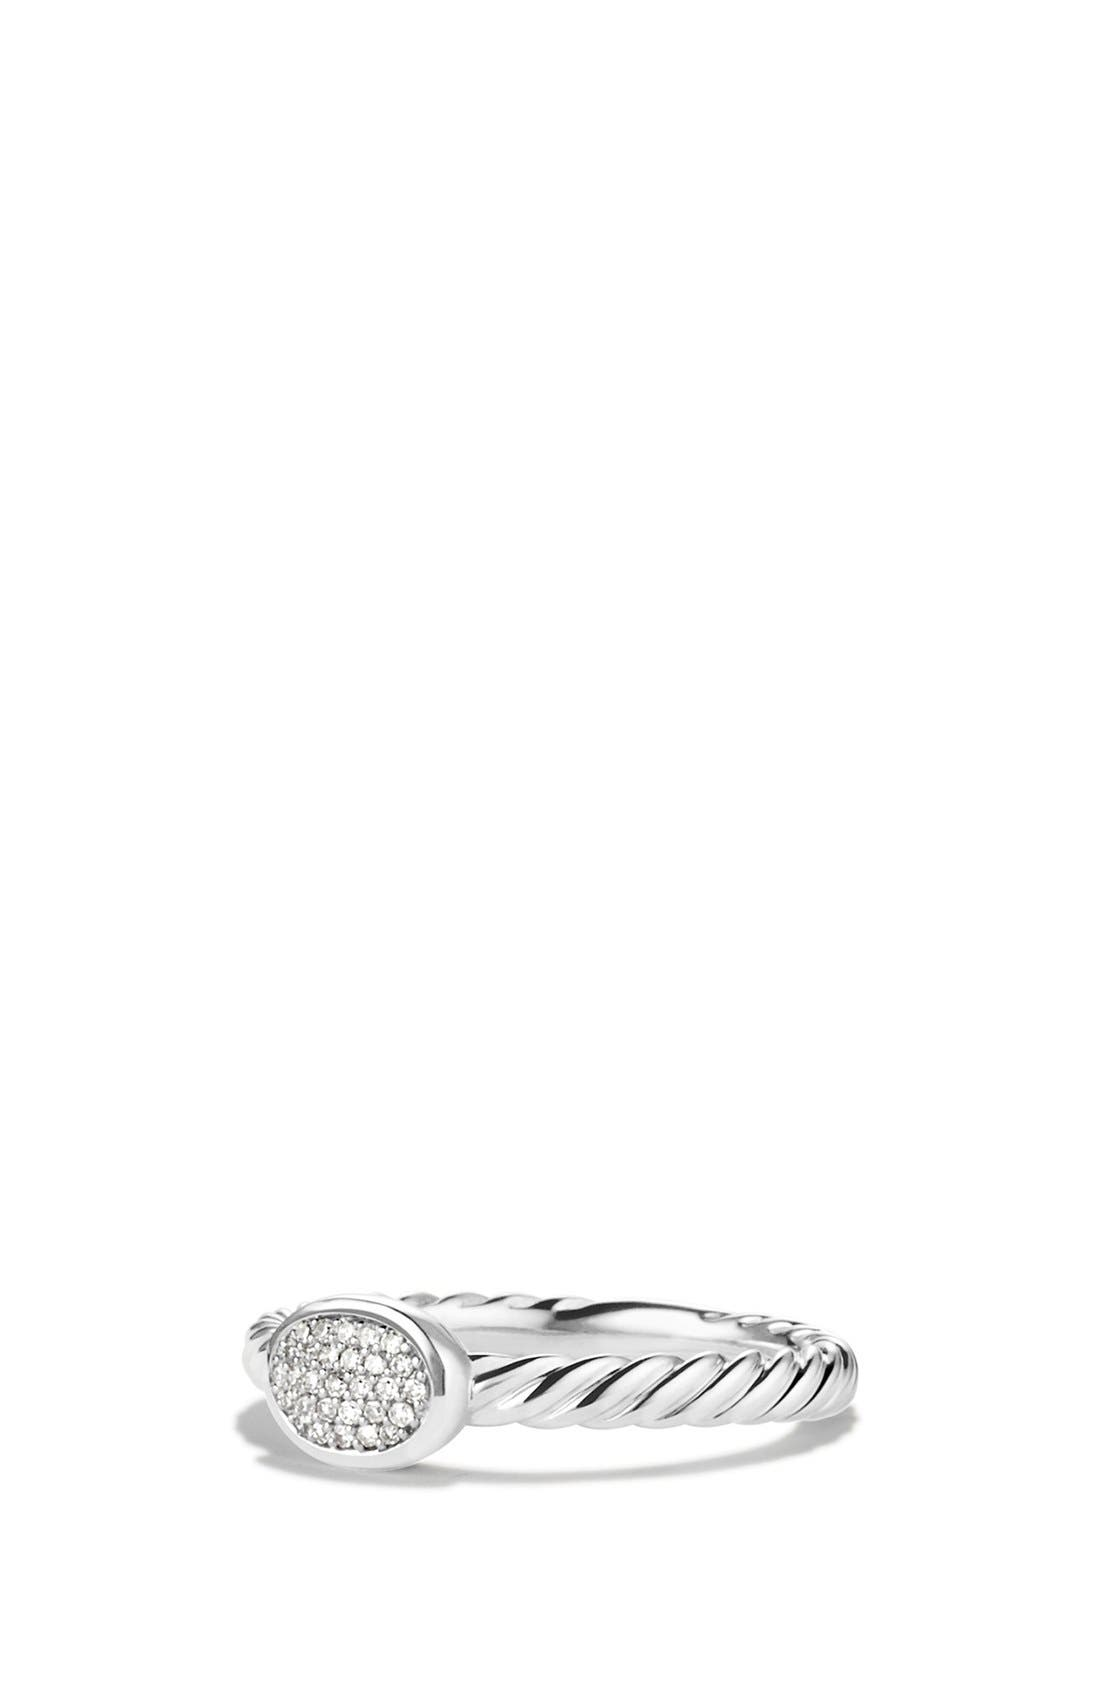 Alternate Image 1 Selected - David Yurman 'Cable Collectibles' Oval Ring with Diamonds